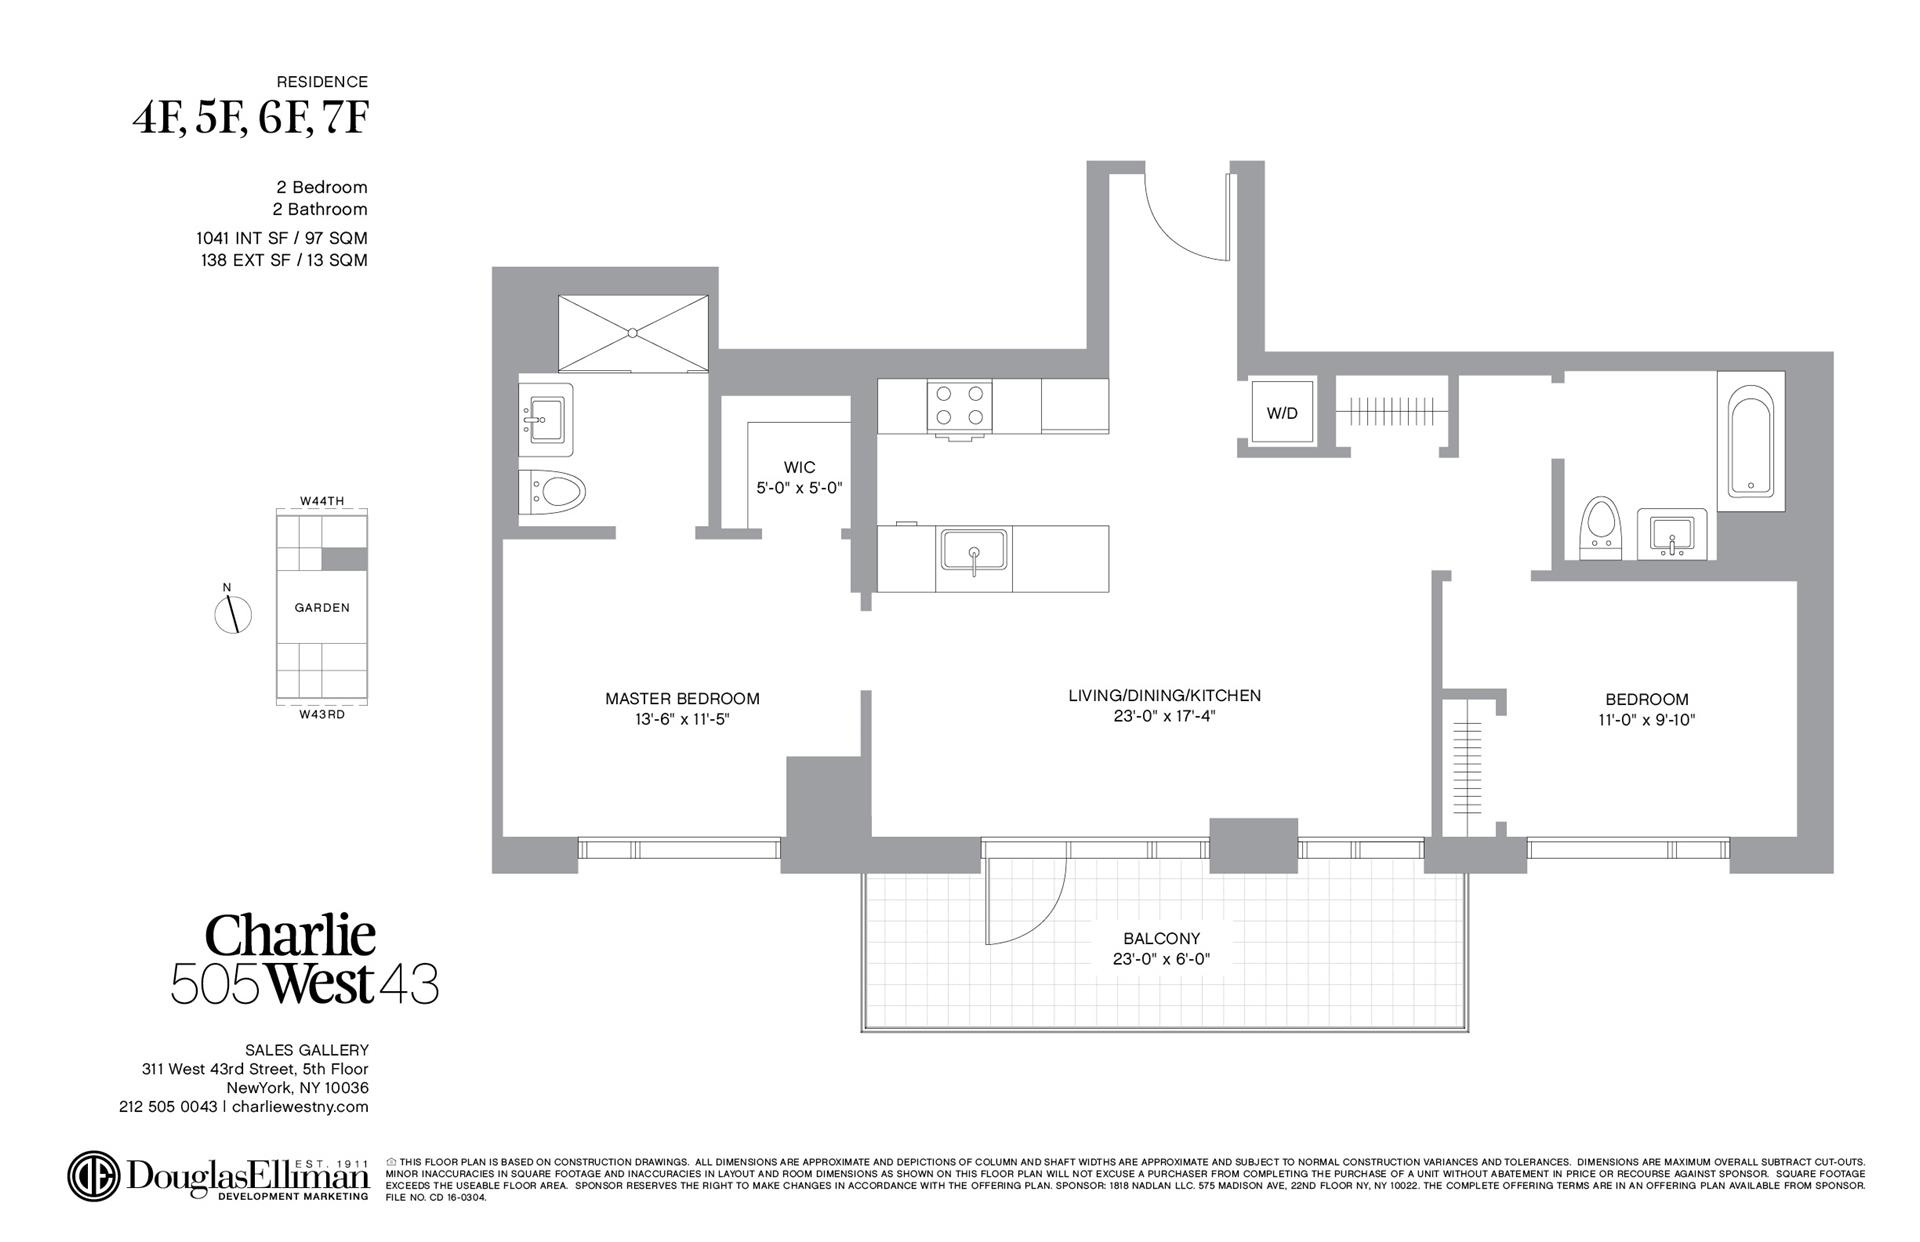 Floor plan of 505 West 43rd St, 5F - Clinton, New York